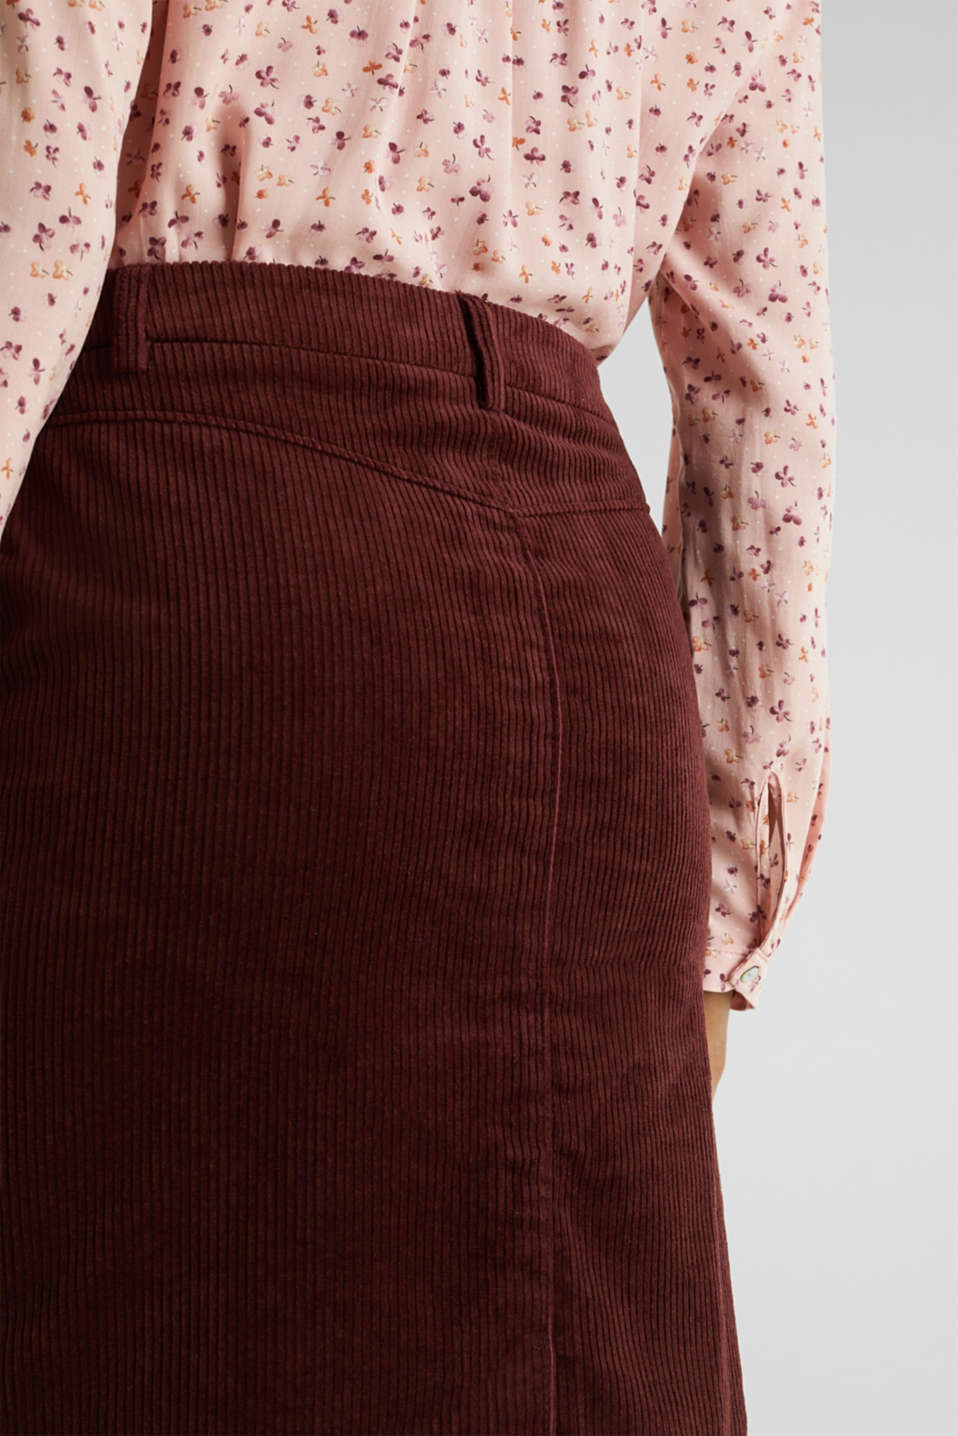 Stretch corduroy skirt with a button placket, BORDEAUX RED, detail image number 5